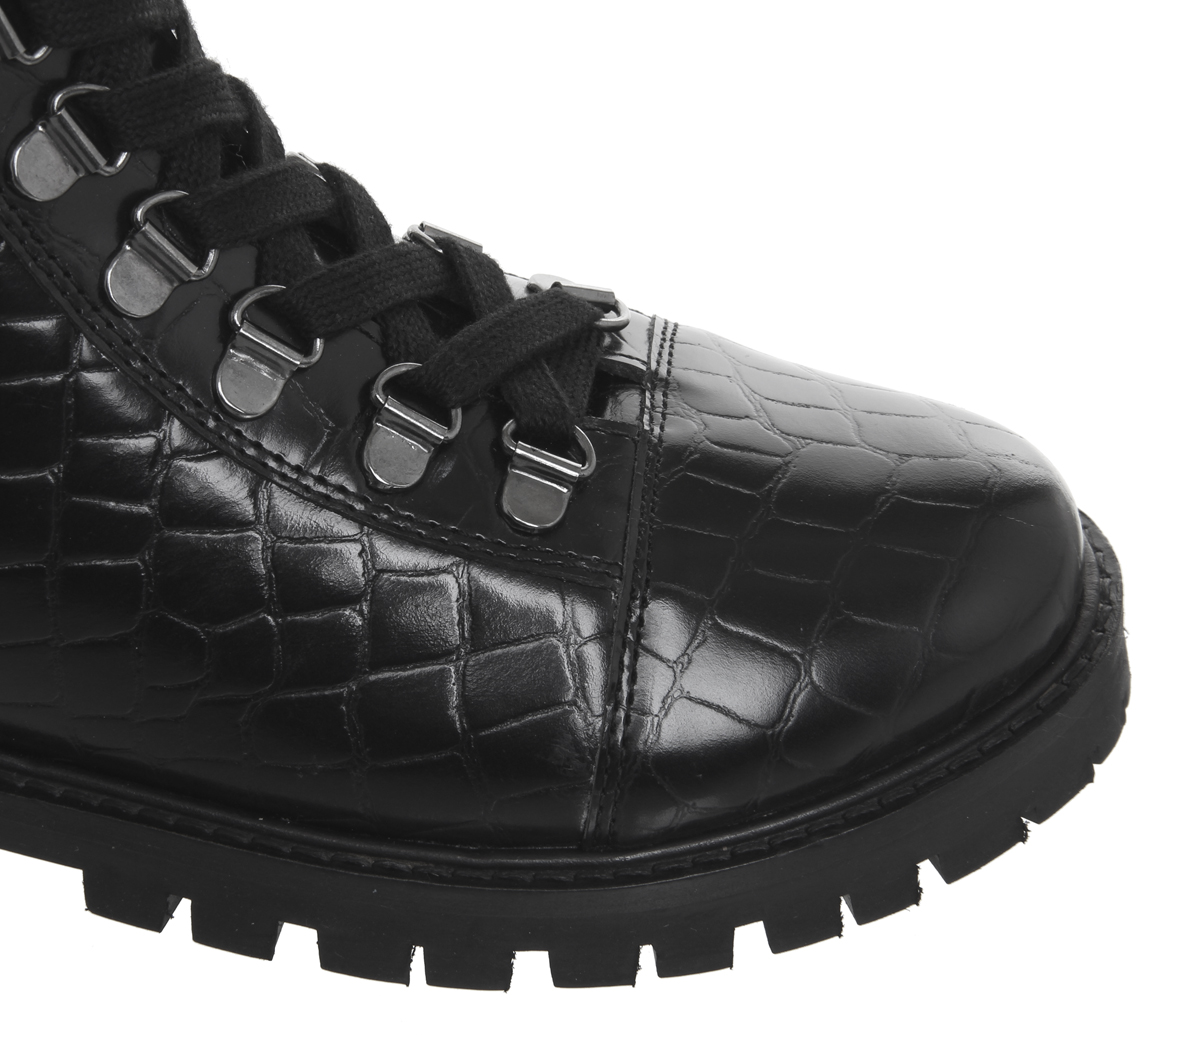 Womens Hiker Ansel Black Boots Croc Up Lace Office Leather rfrqxnp